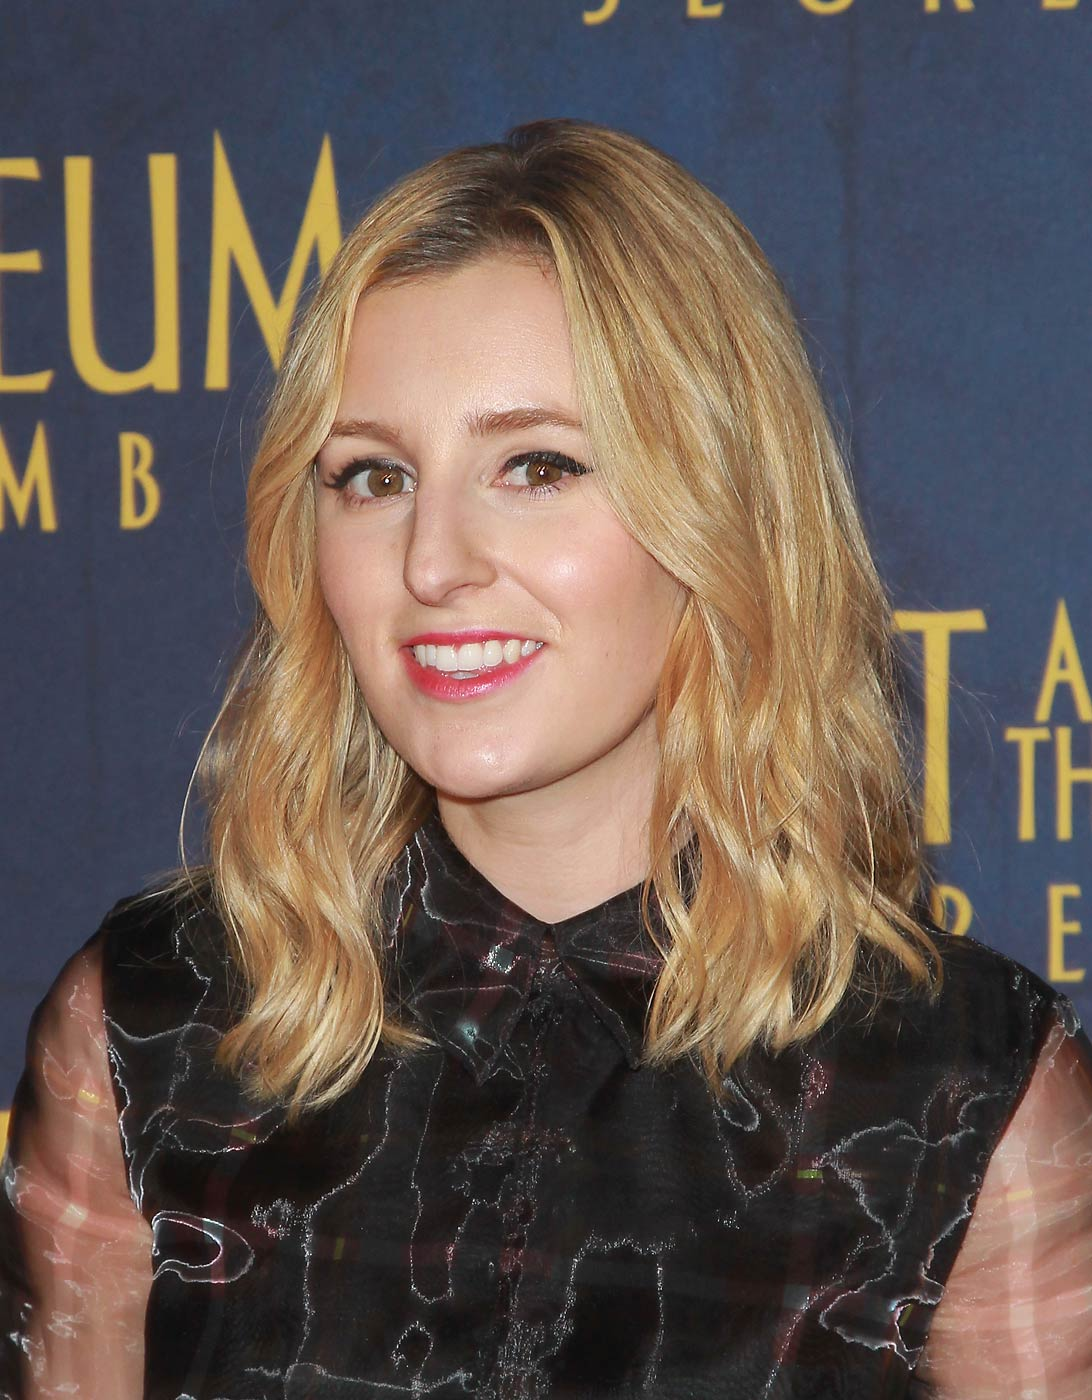 Laura Carmichael attends the Night At The Museum: Secret Of The Tomb New York premiere at the Ziegfeld Theater on December 11, 2014 in New York City.